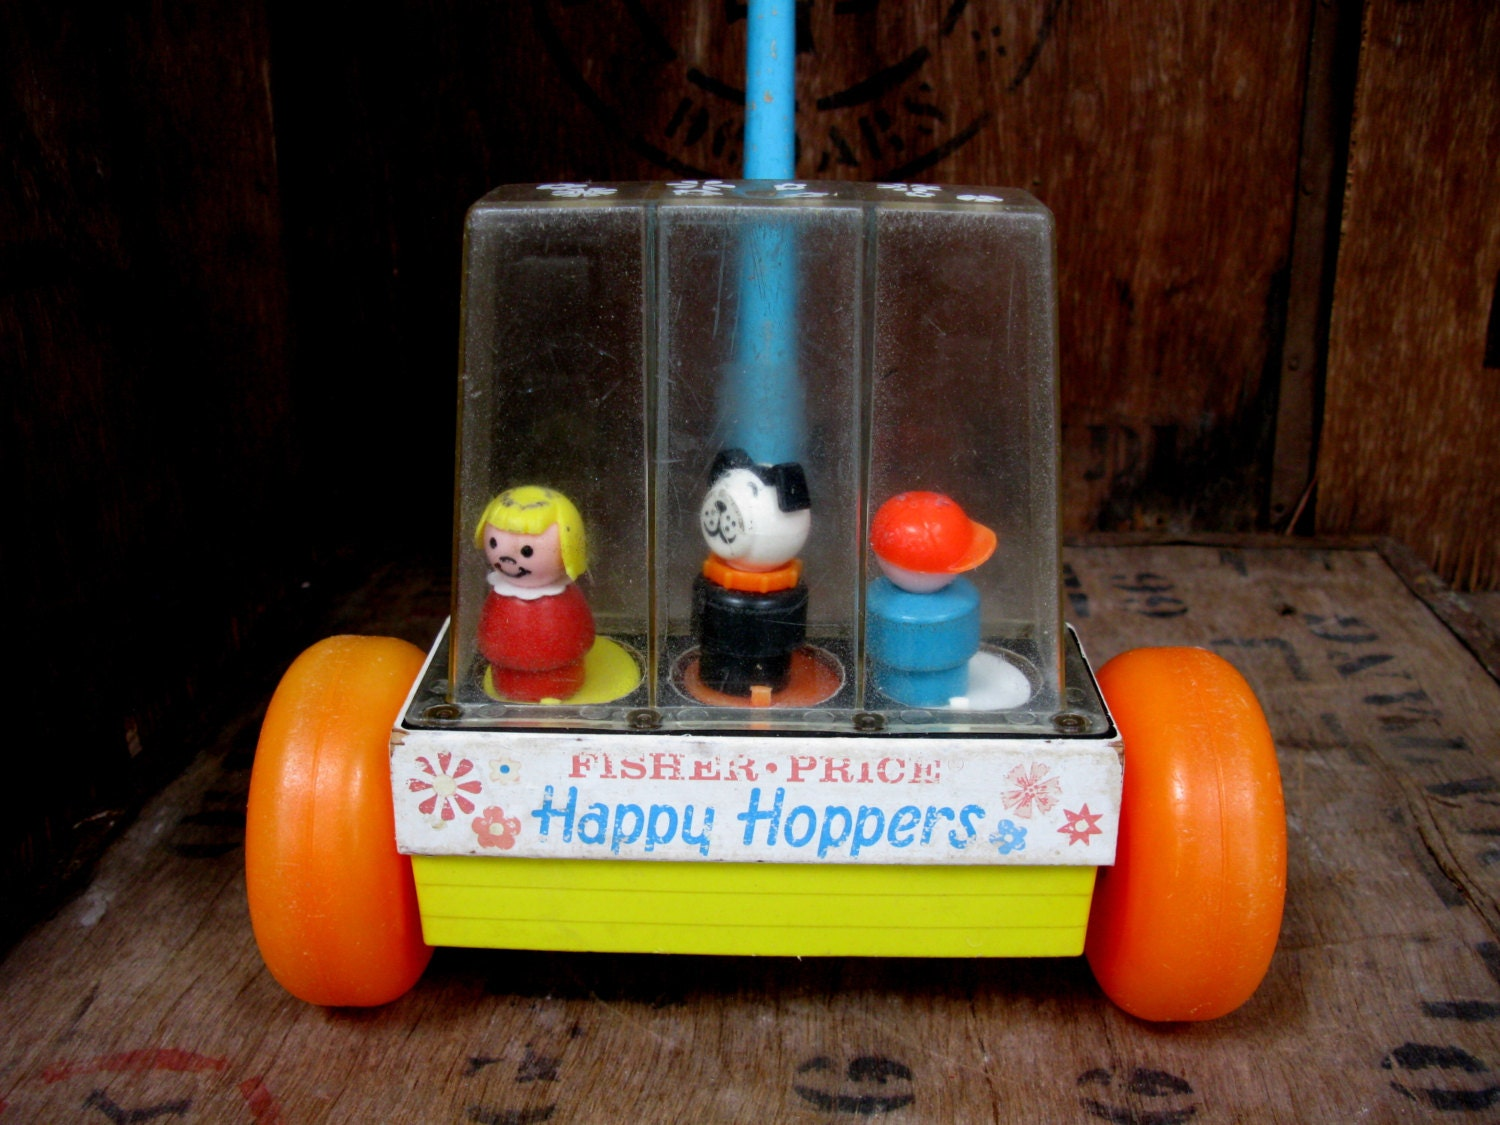 Happy Hoppers Toy Fisher Price Vintage Fisher Price 1960s Toy Fisher Price Toy Push Along Toy Toddler Toy Roller Toy Walker Toy